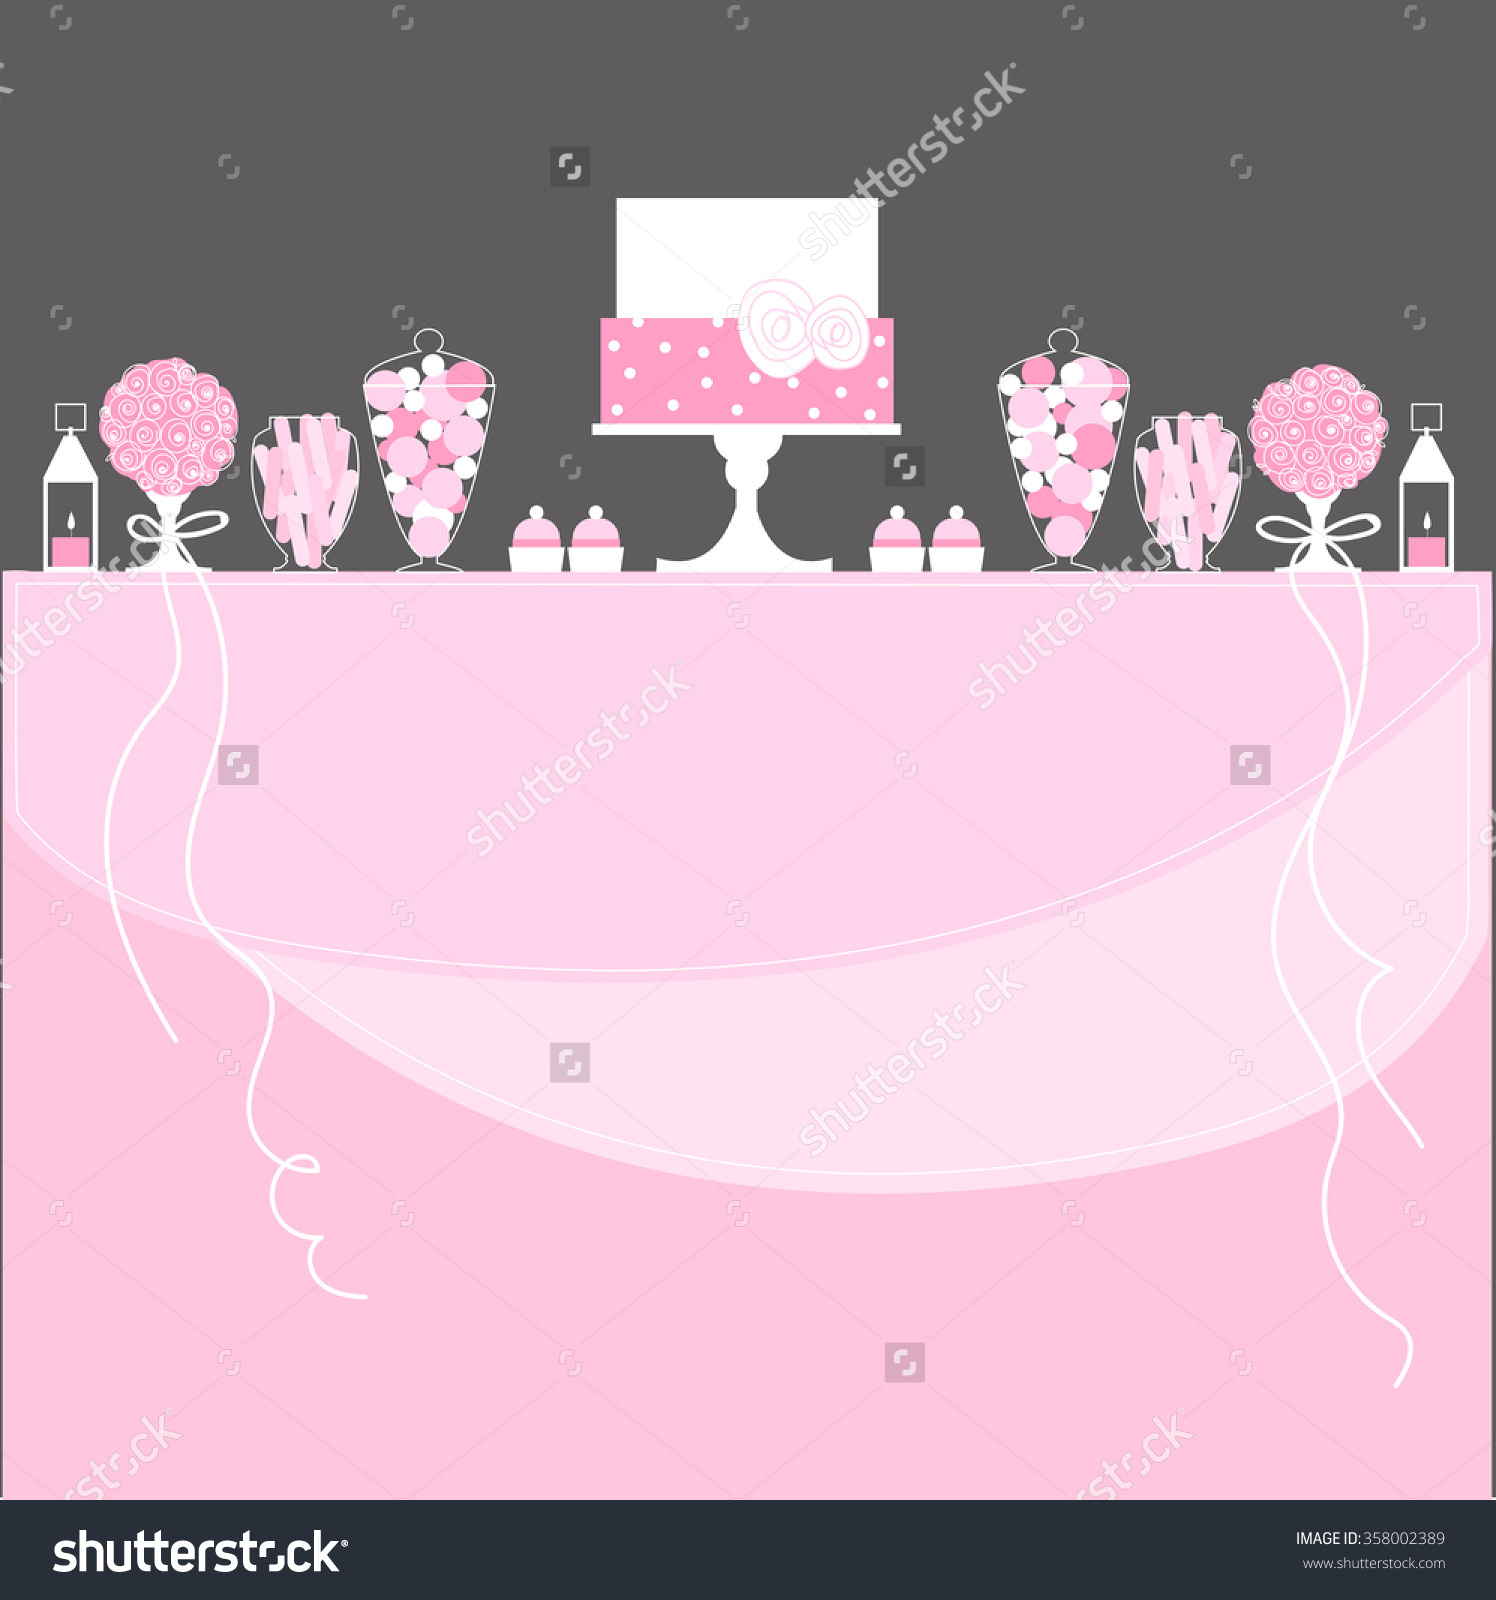 Candy Buffet Cake Lanterns Flowers Wedding Stock Vector 358002389.